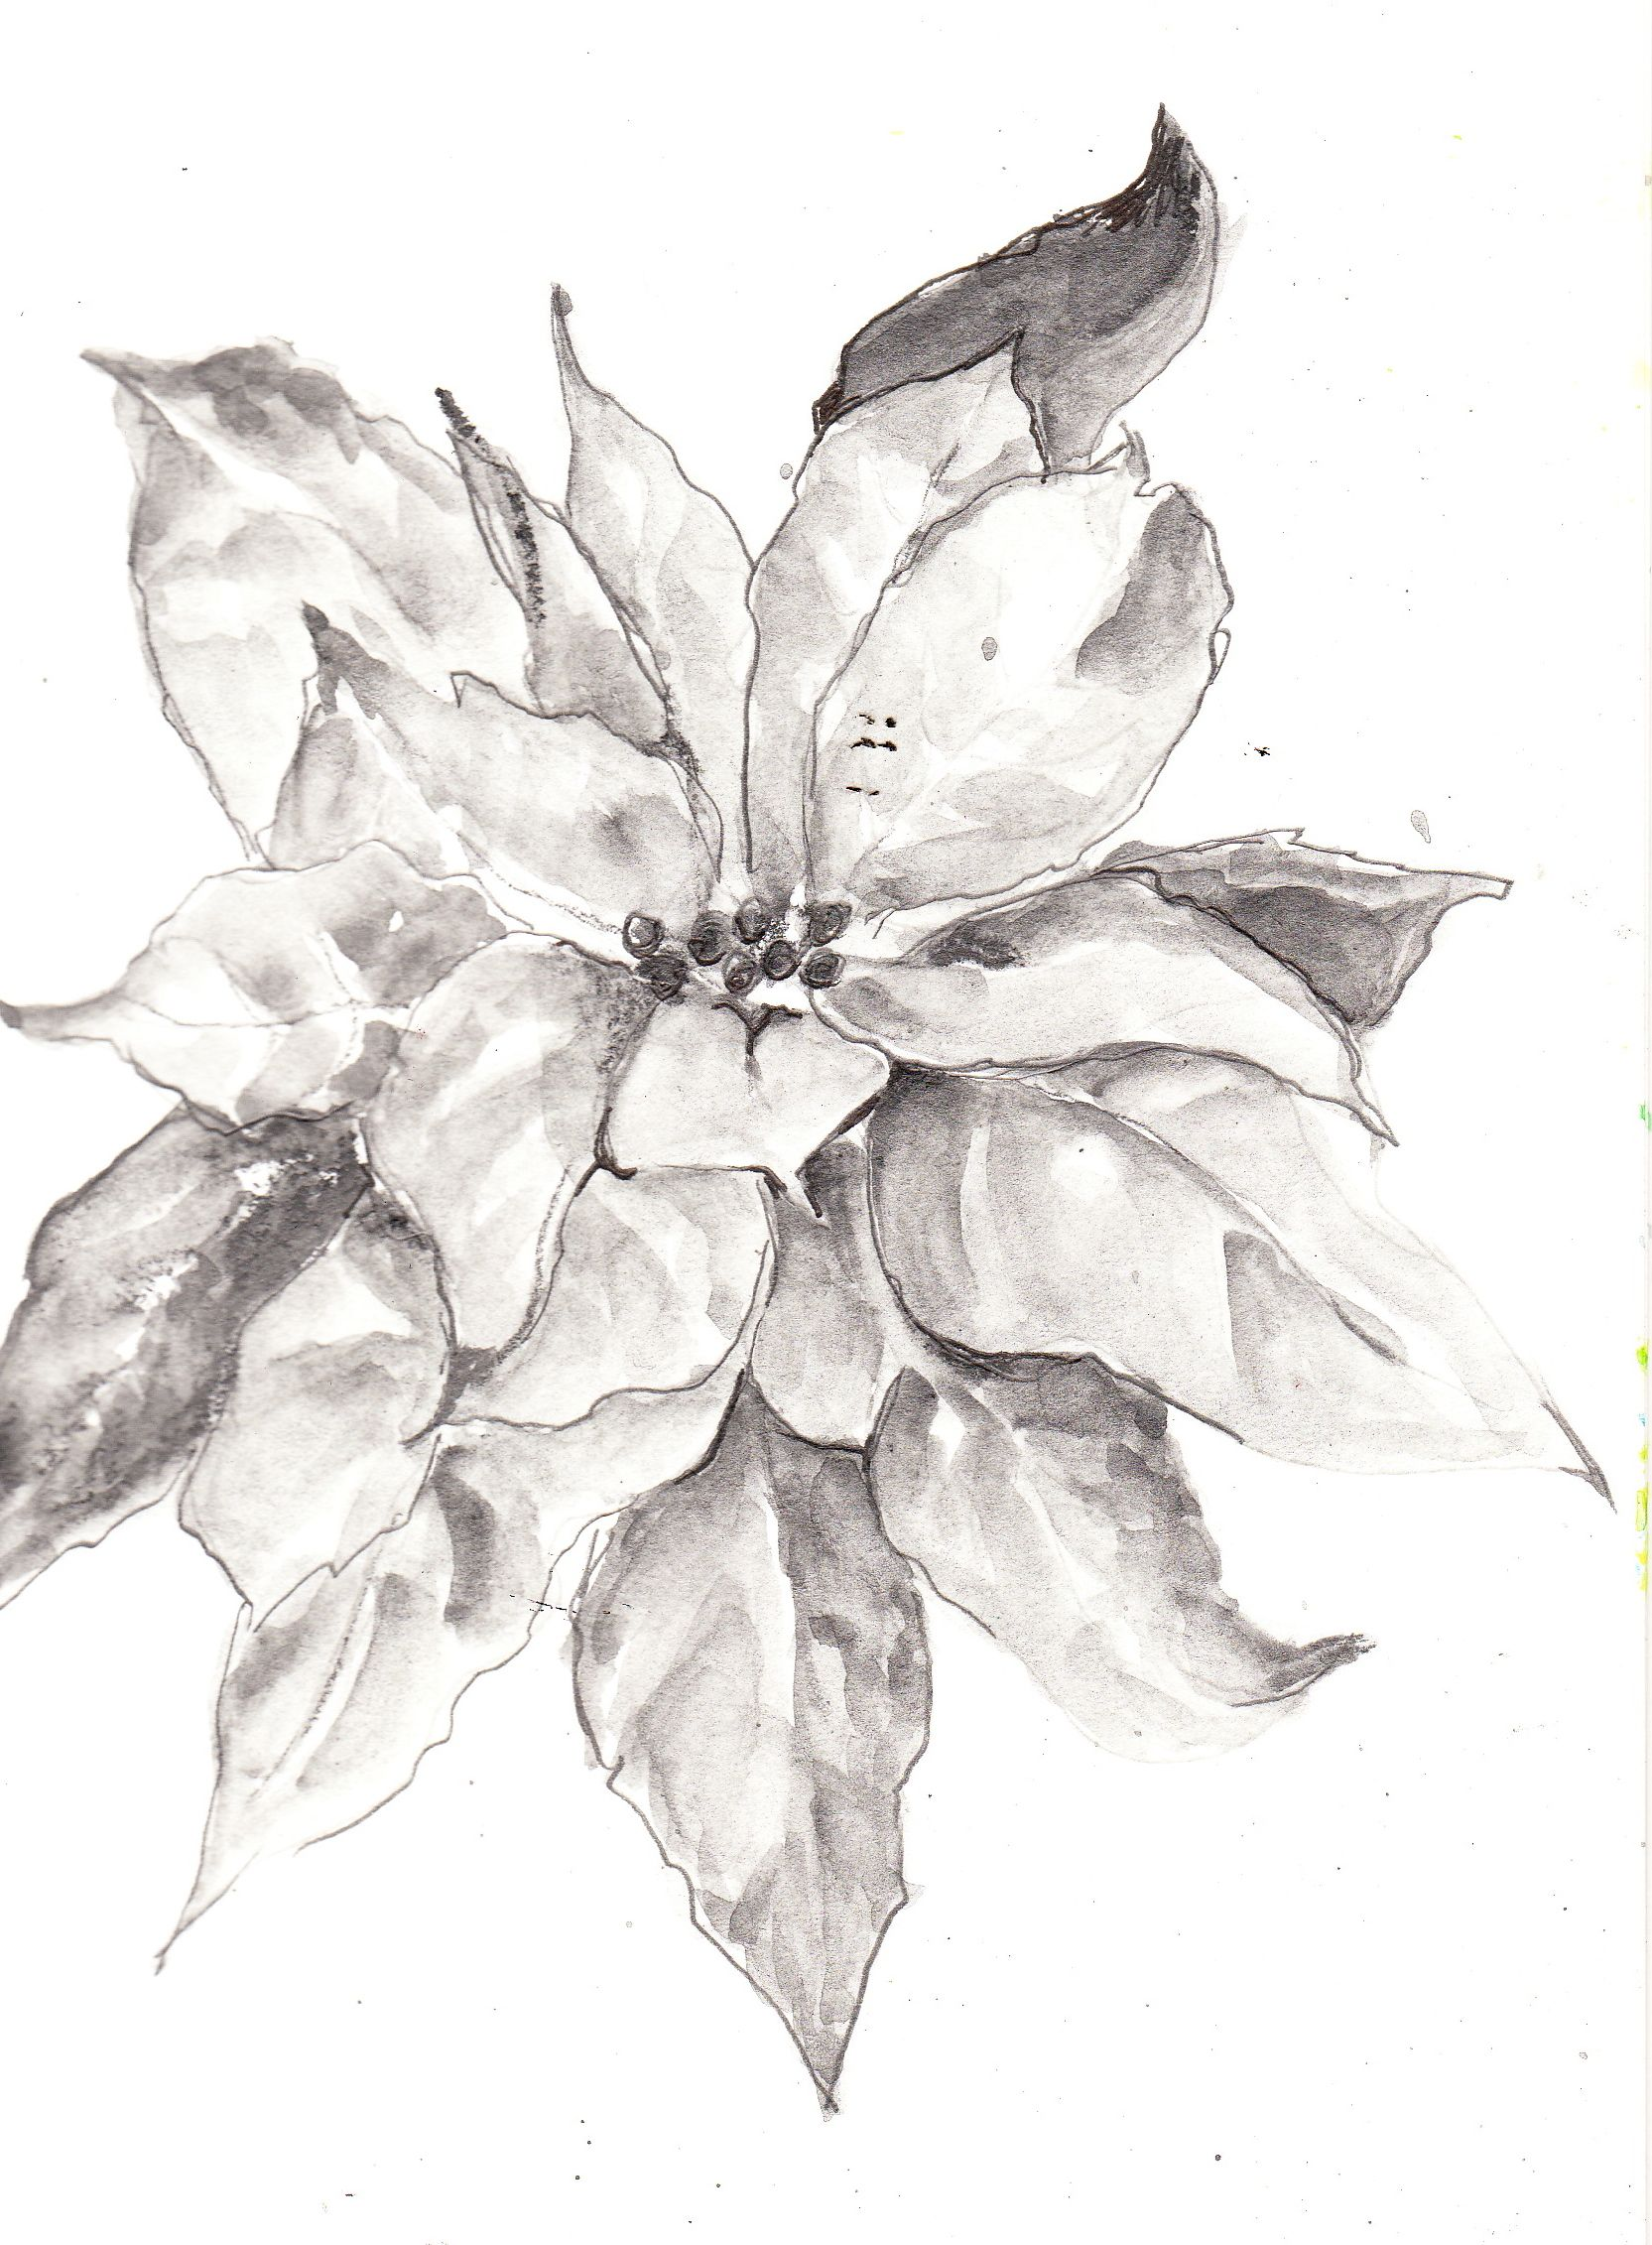 Image detail for poinsettia sketch using sketch wash